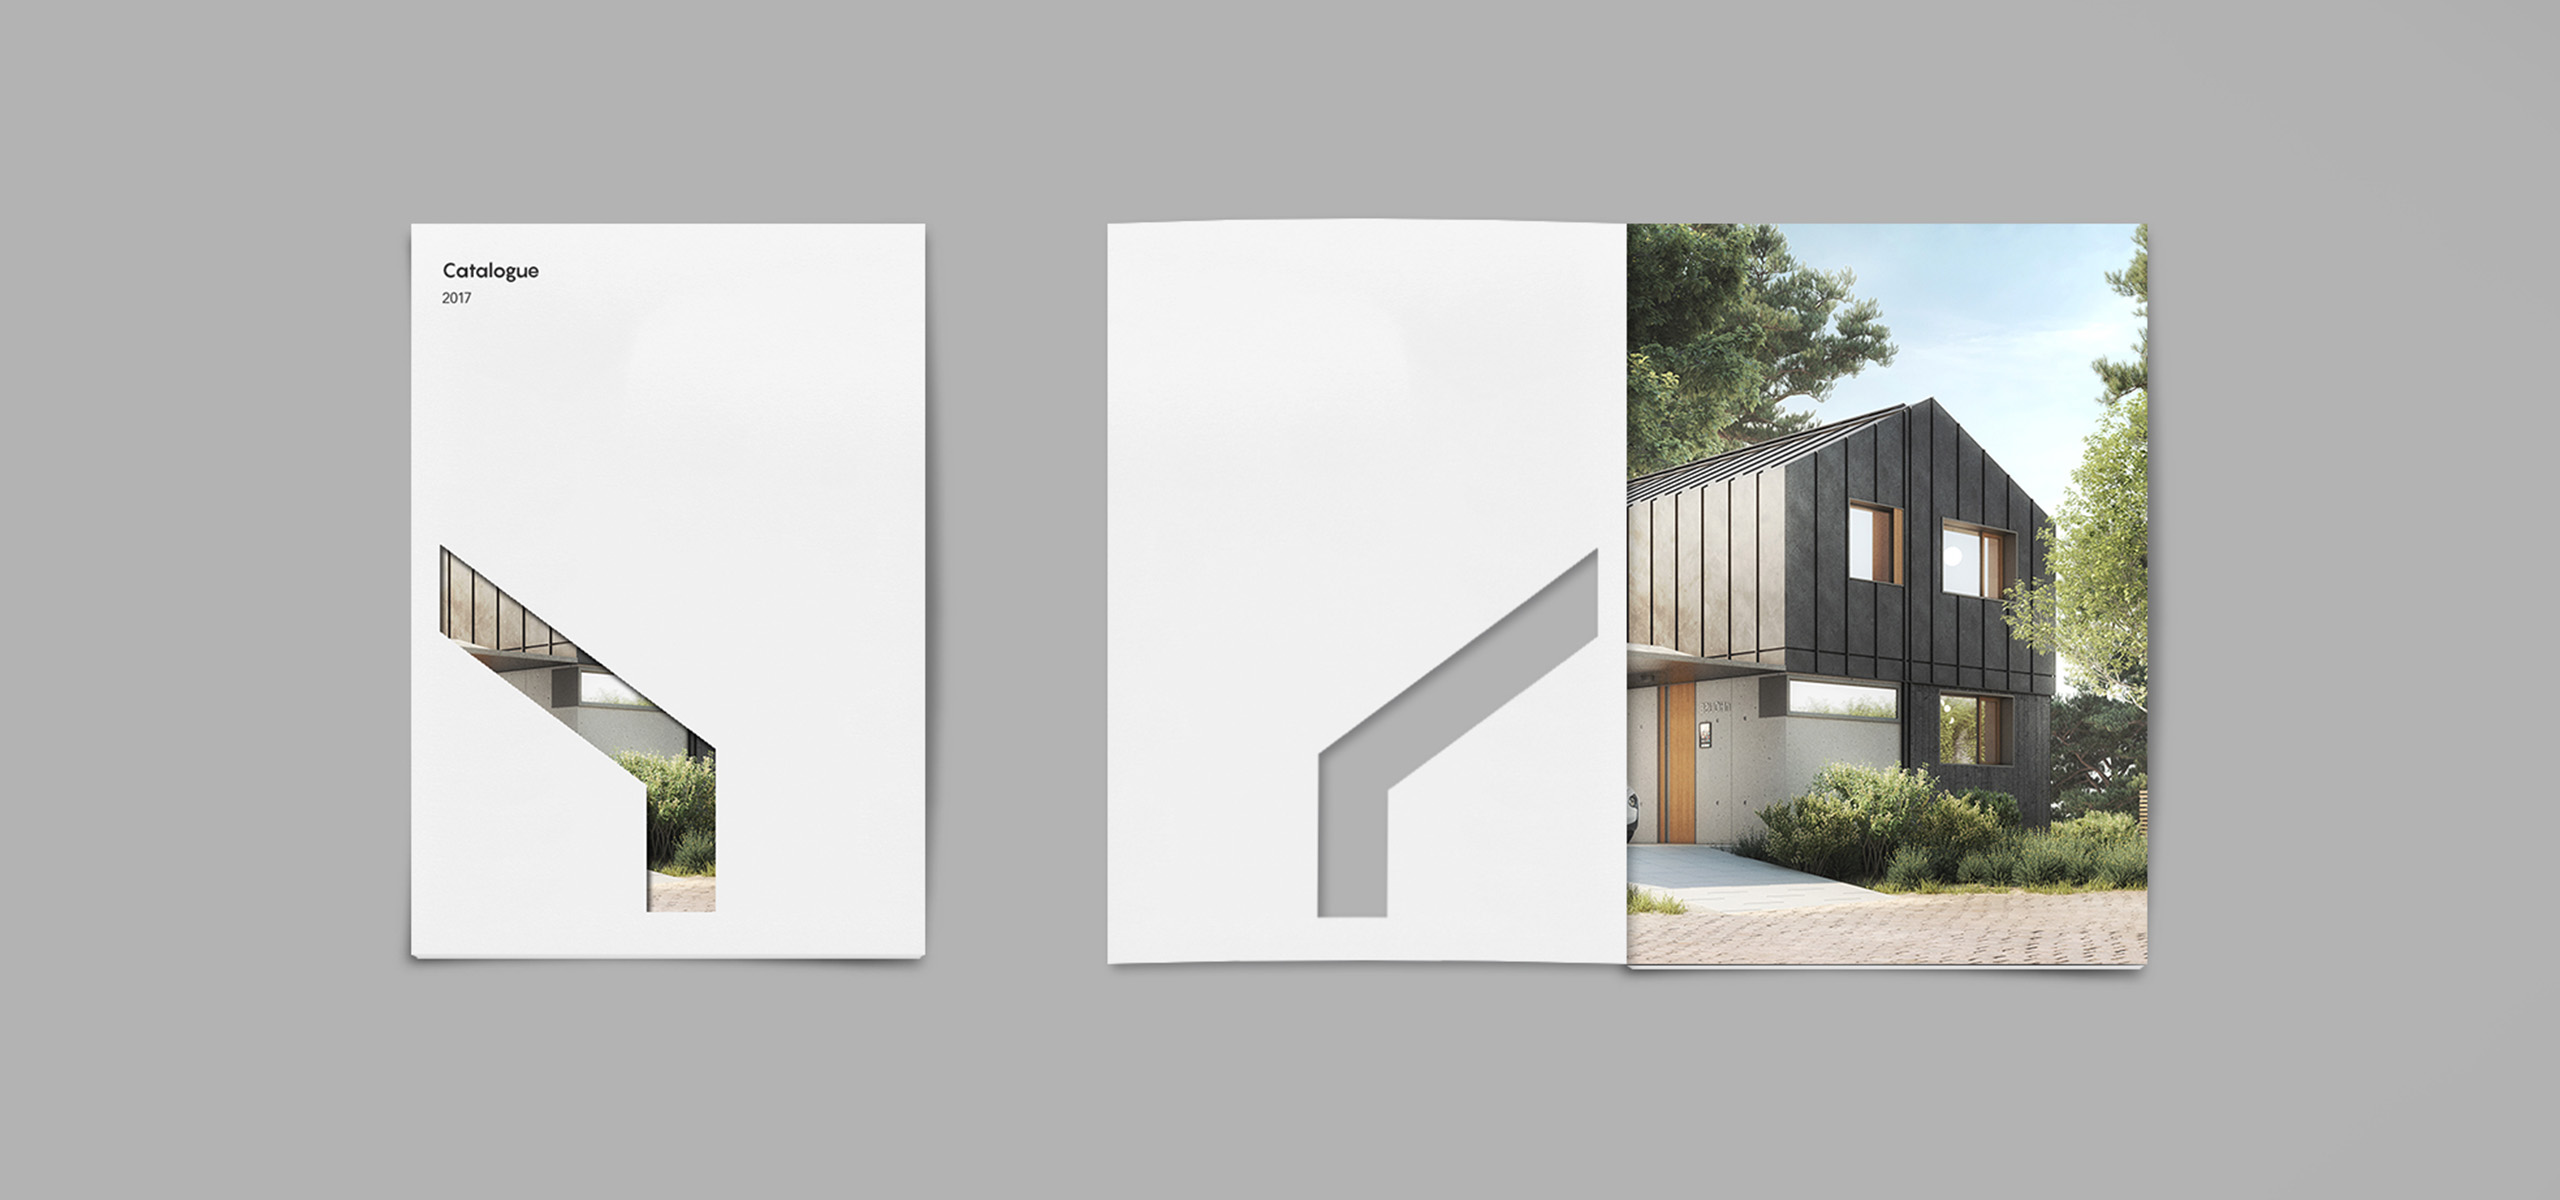 Brochure mockup for architecture startup brand nHouse, designed by White Bear Studio